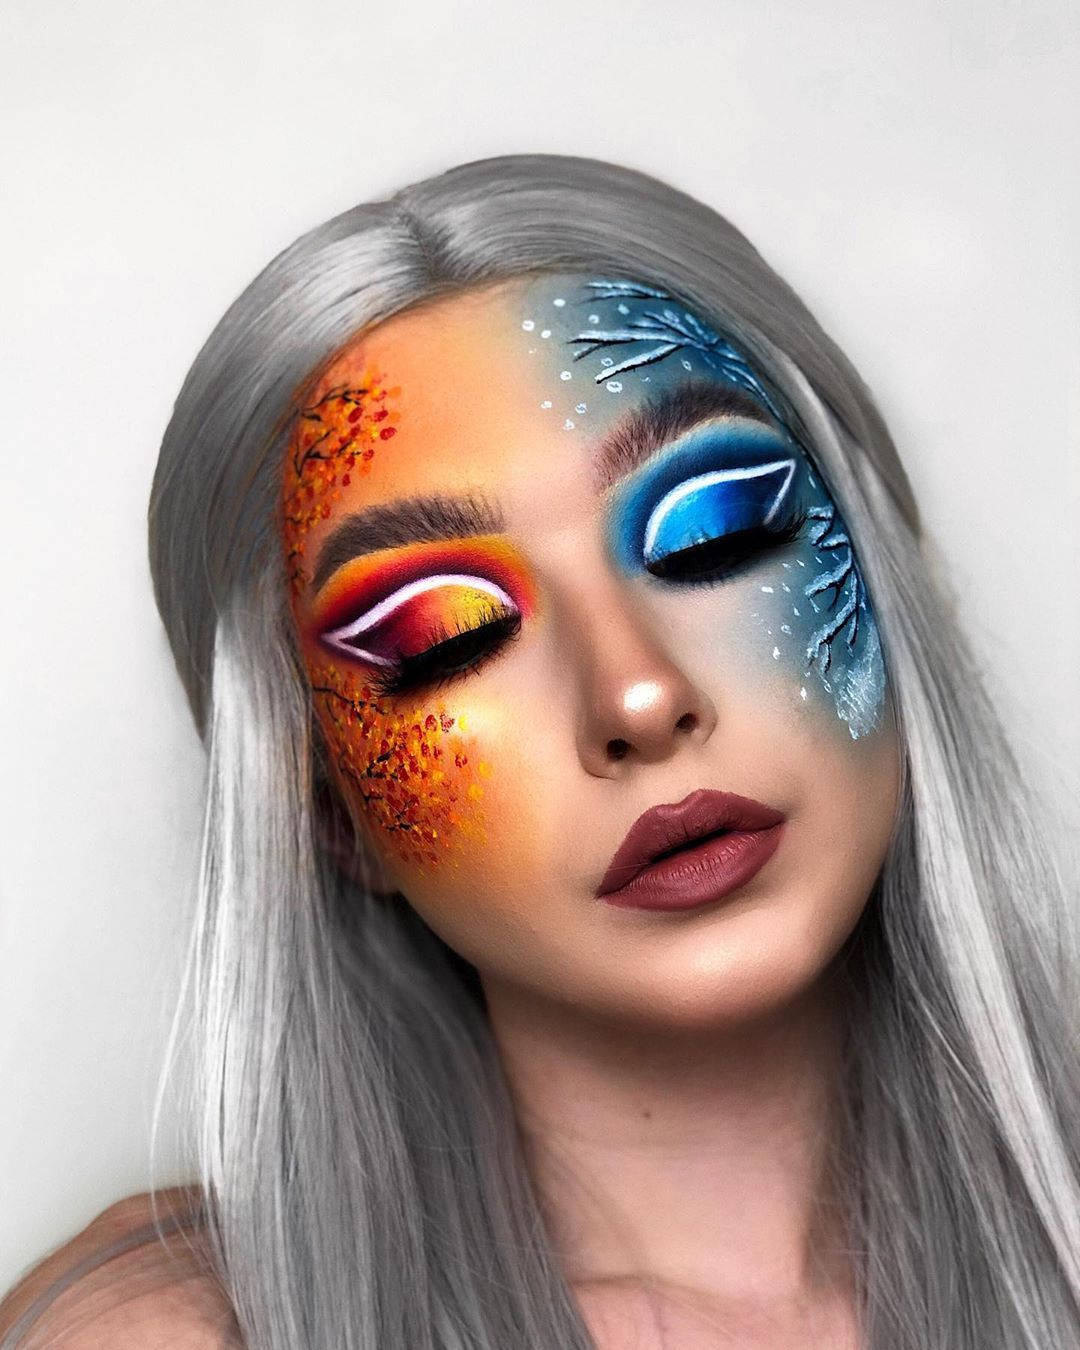 75+ Best Halloween Makeup Ideas on Instagram 2020 | Makeup Looks